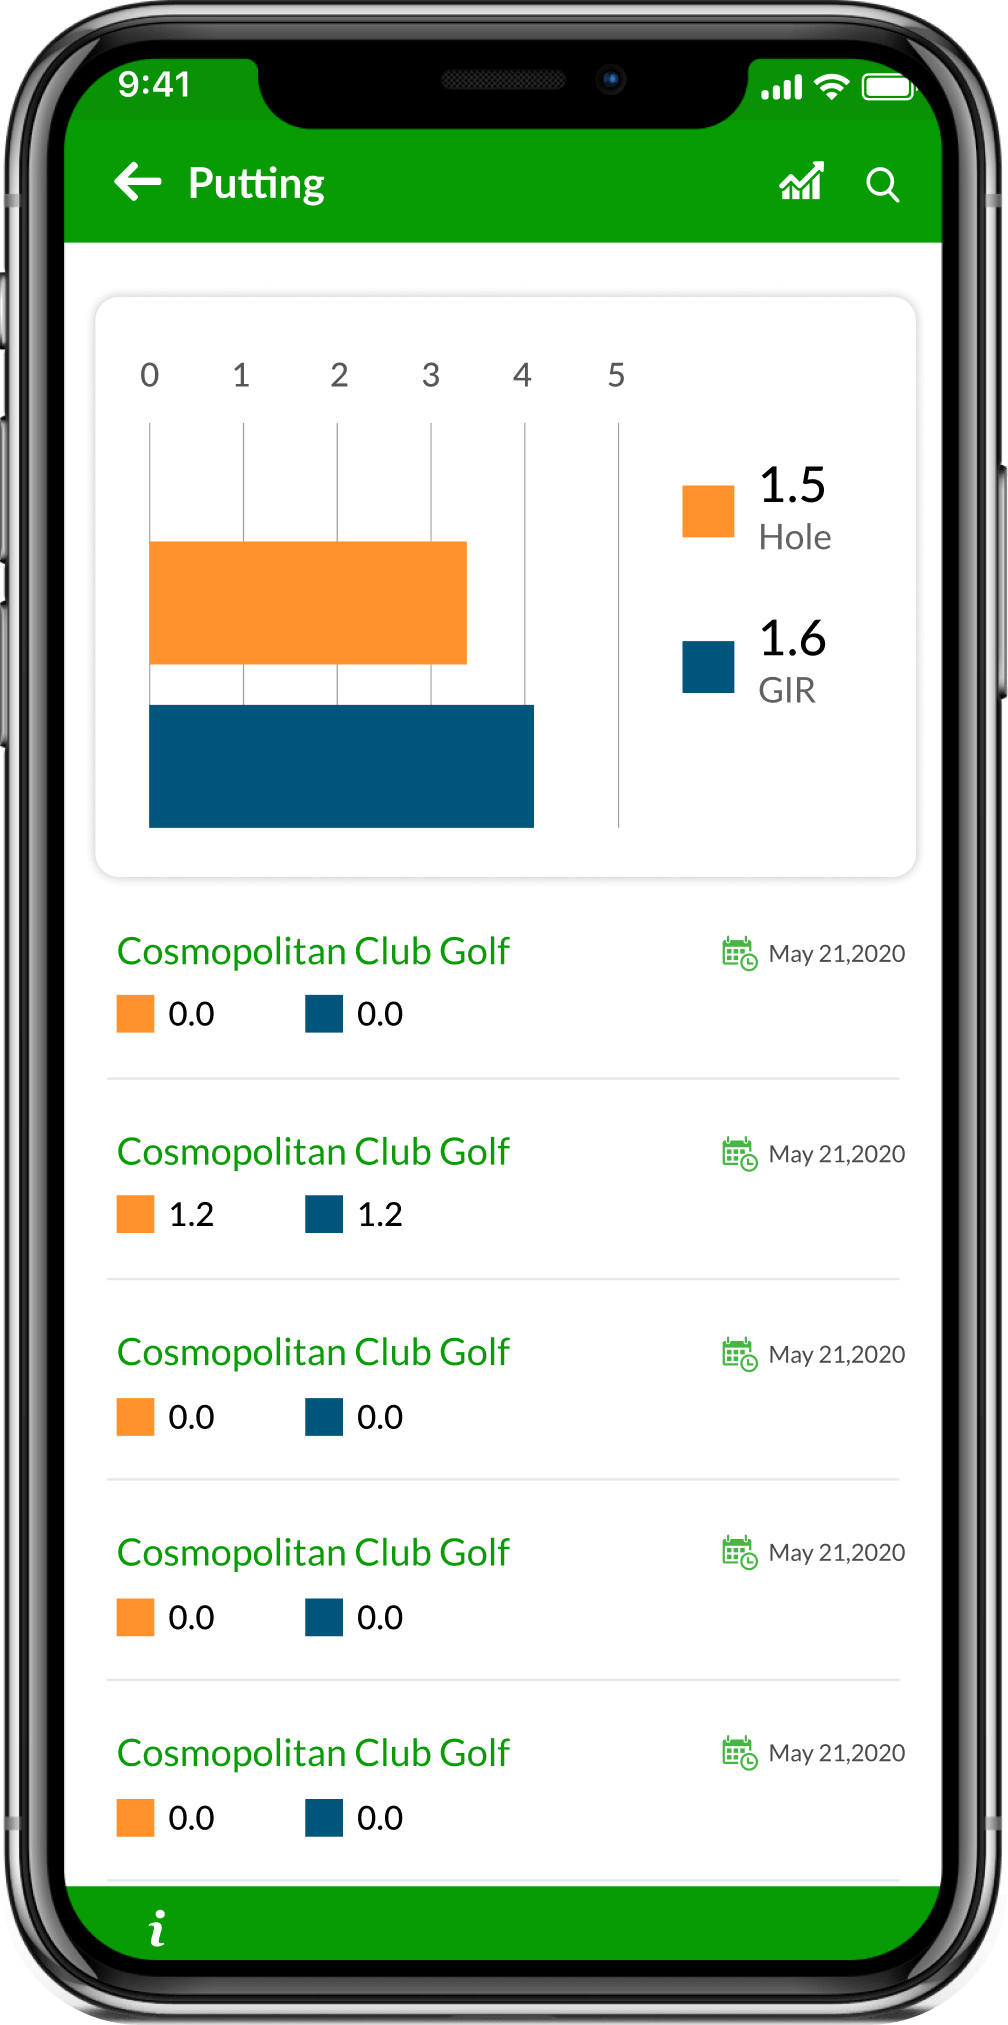 Golf game stats app screenshot showing individual scores with course and date